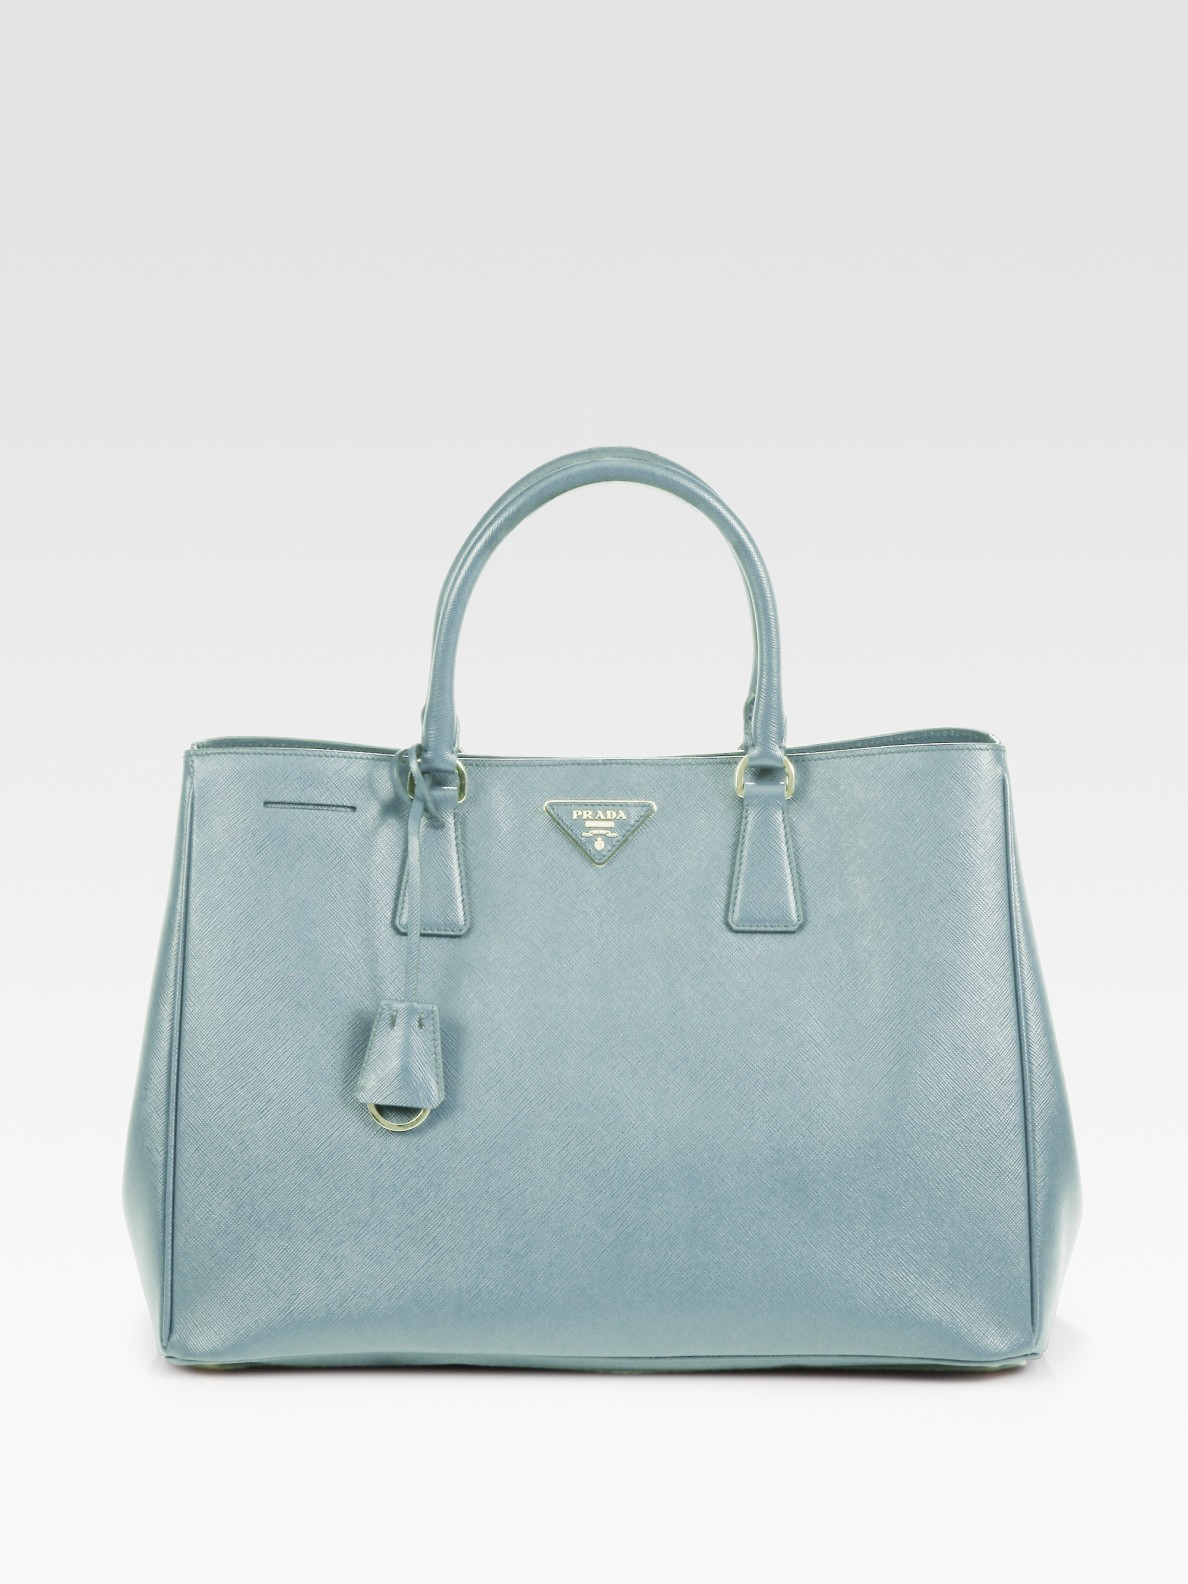 25aa2c86509a Prada Saffiano Lux Tote Bag Blue | Stanford Center for Opportunity ...